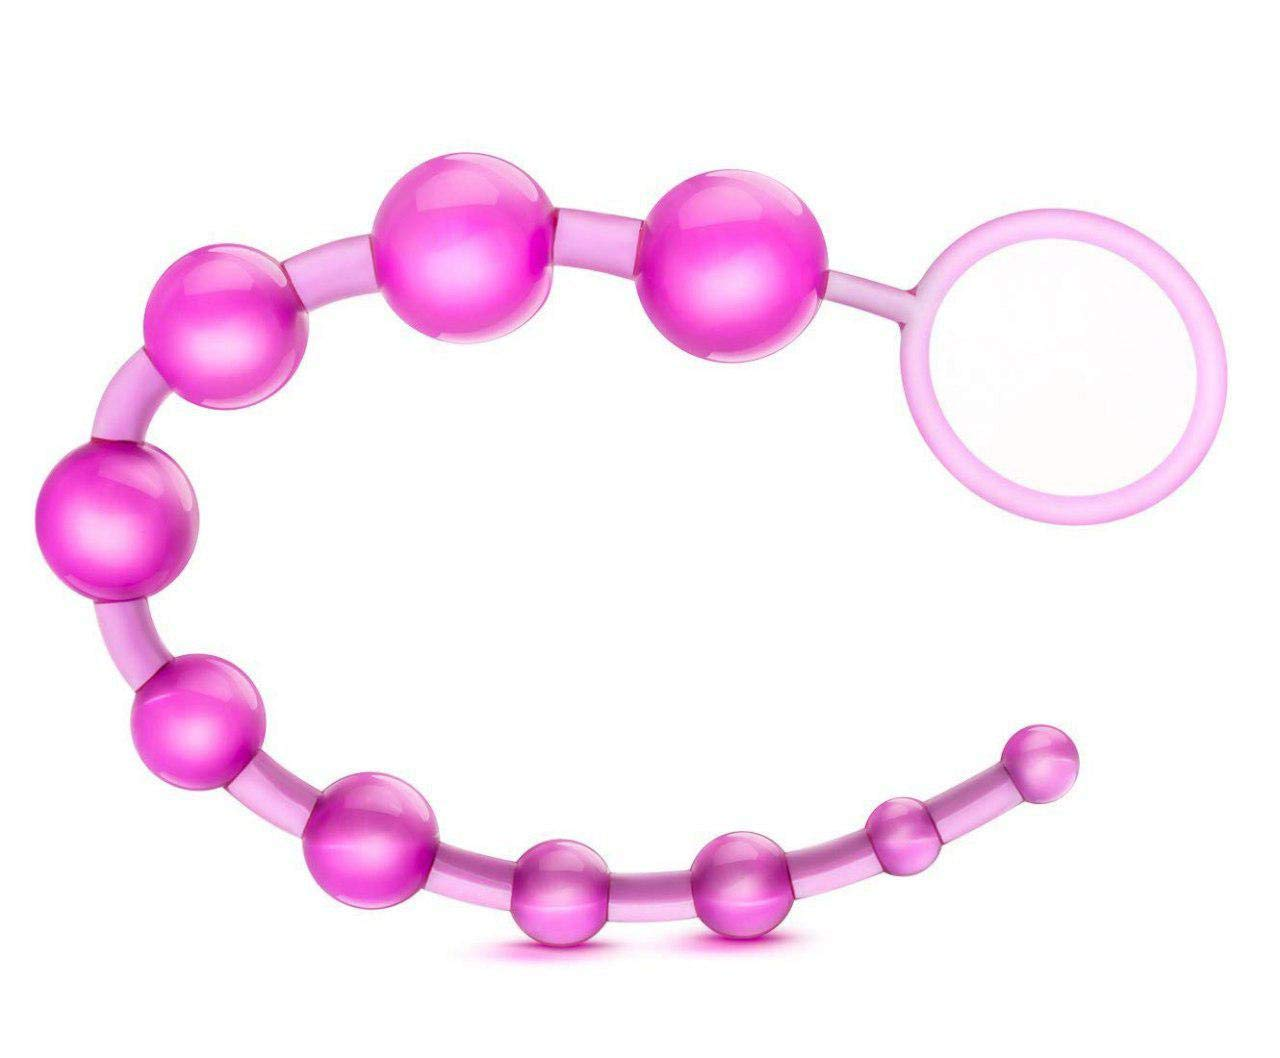 Silicone Beads Body Safe Tail Bead Trainer Kit - Pink